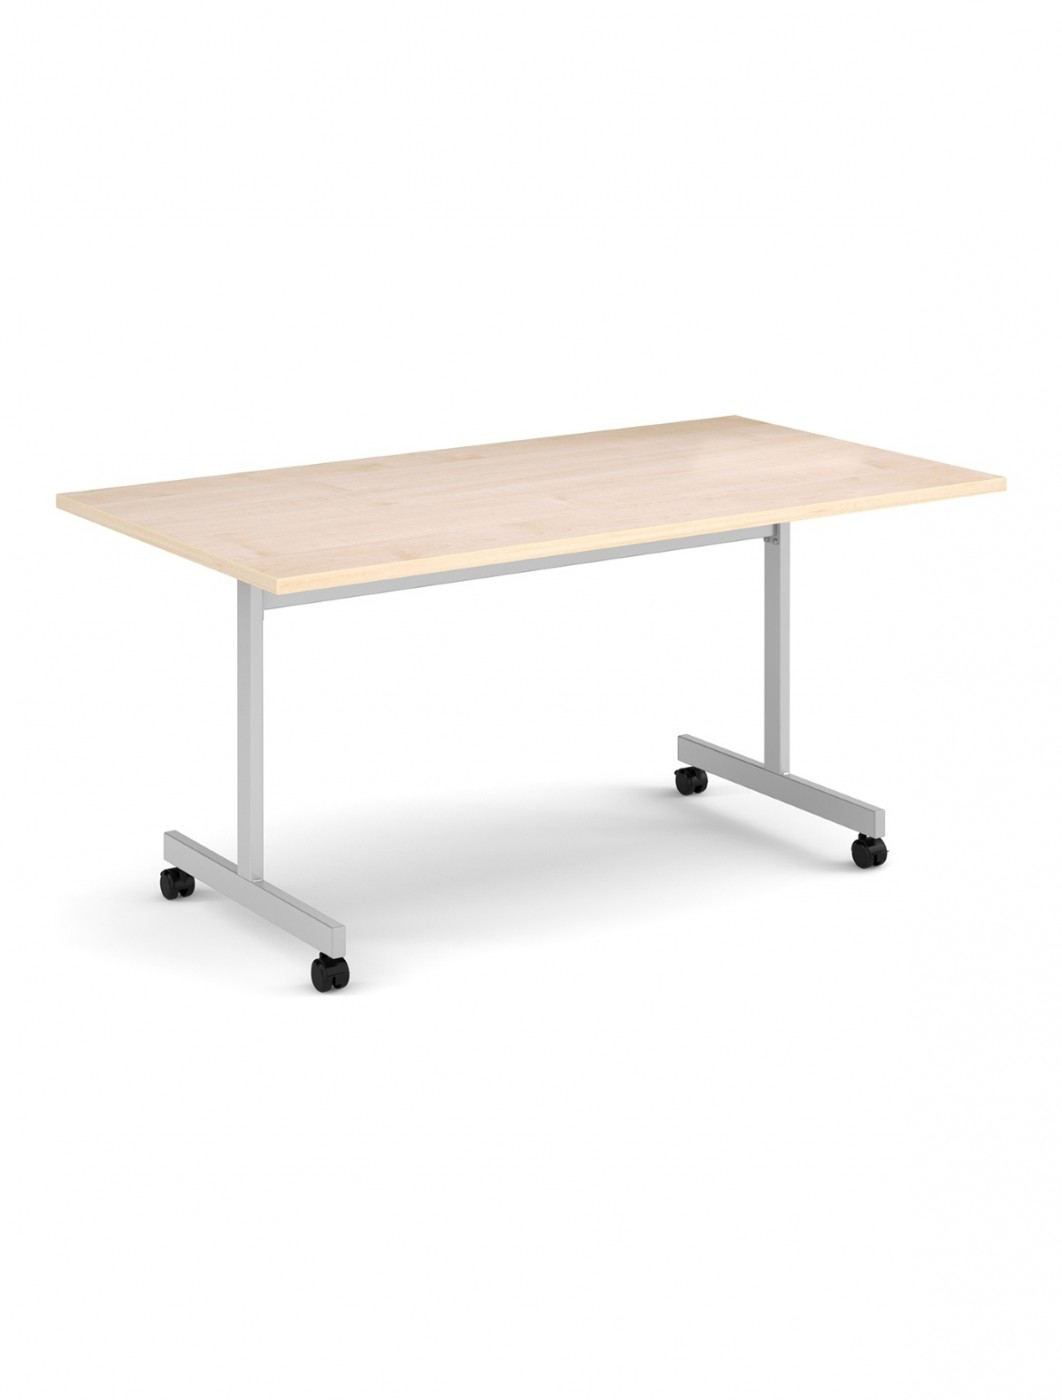 Maple Table - Flip Top Meeting Table 1600mm FLP16-S-M